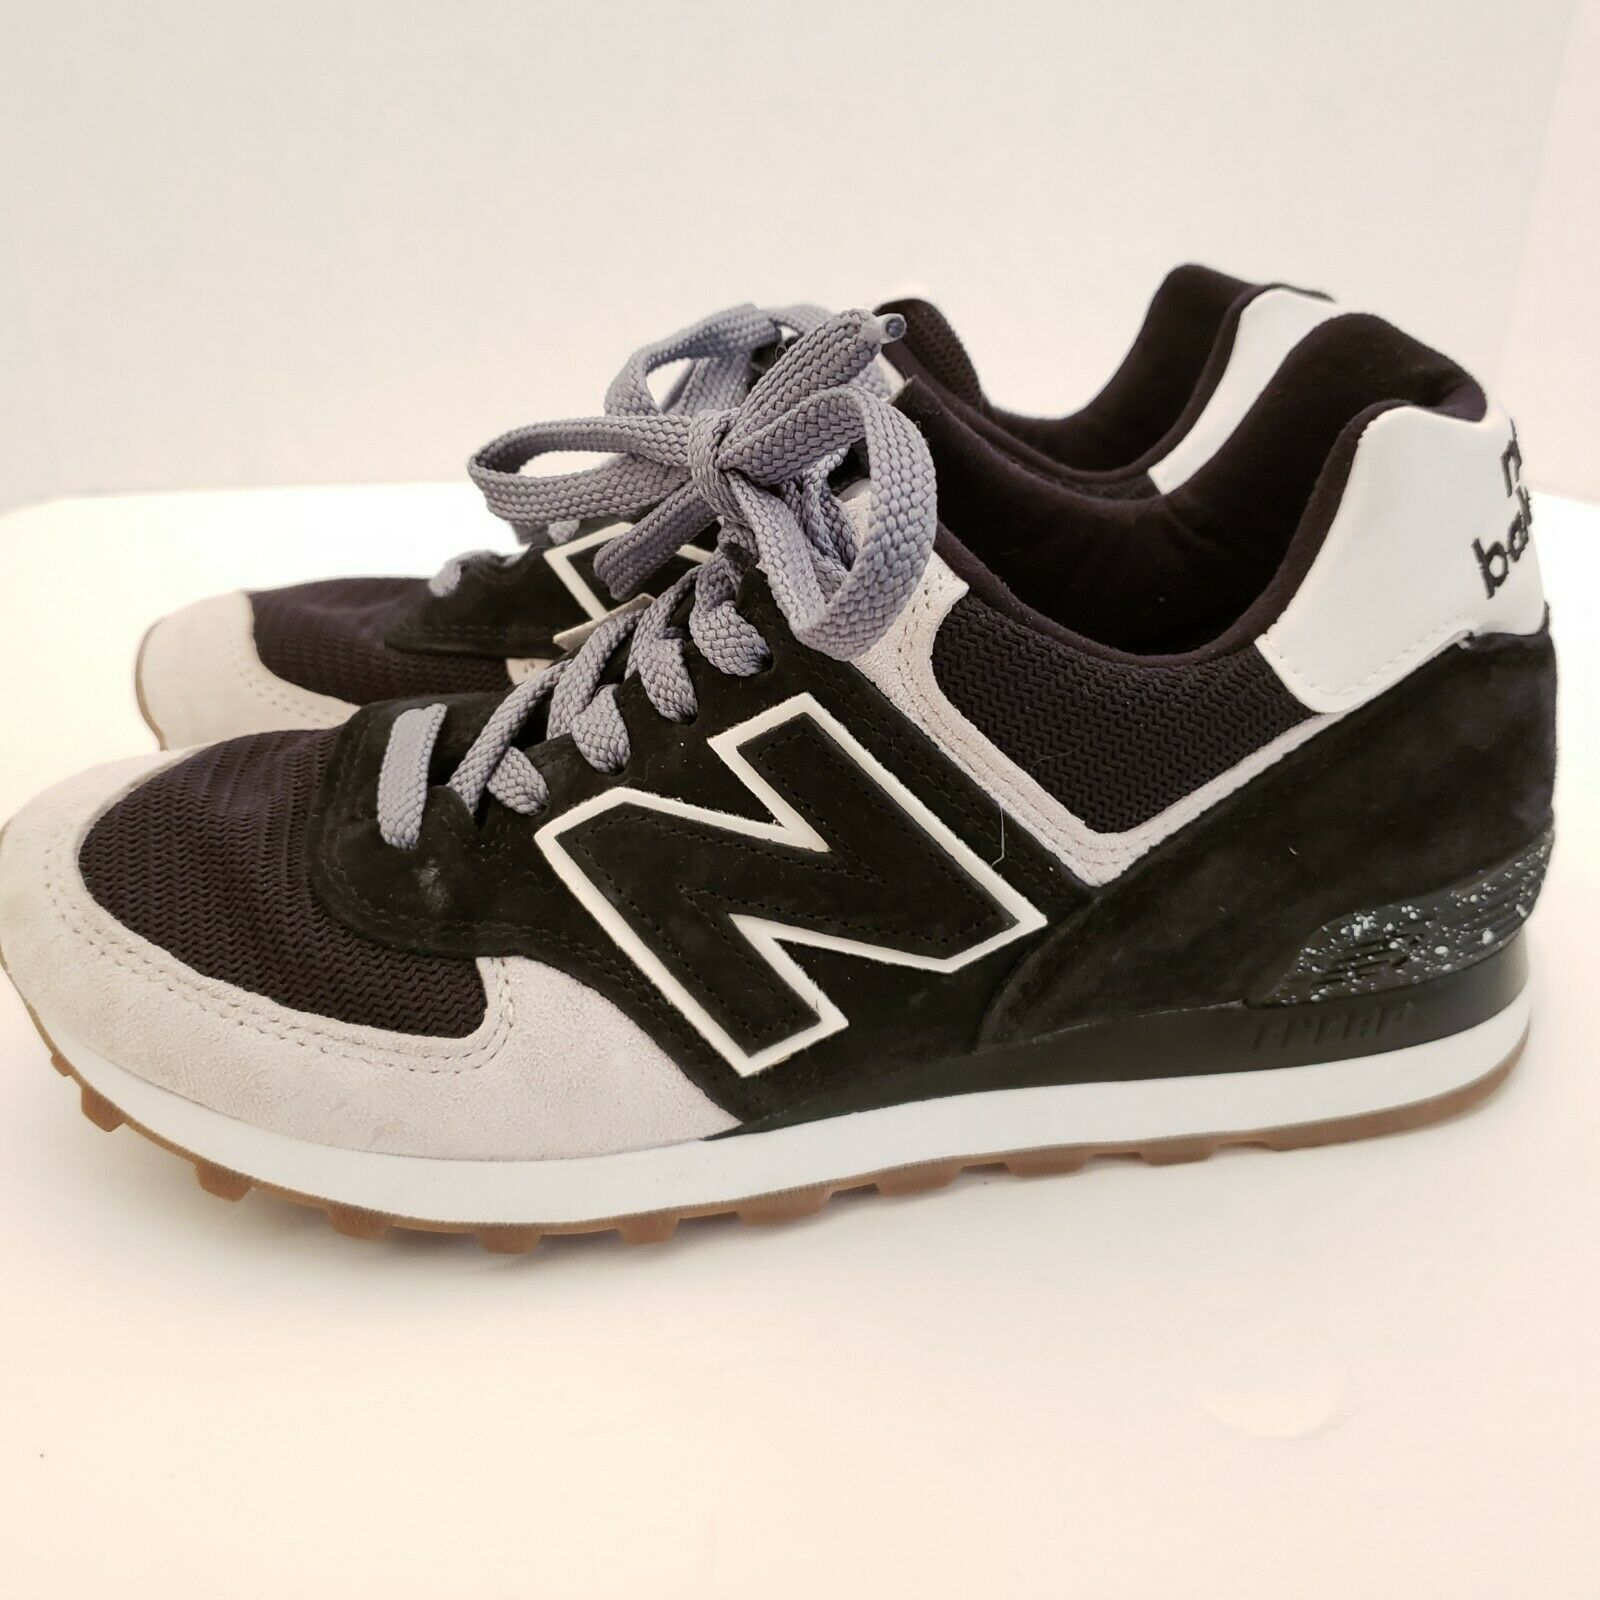 New Balance Men's Size 7 Black and White Running Sneakers USA Made Classic Shoe image 4